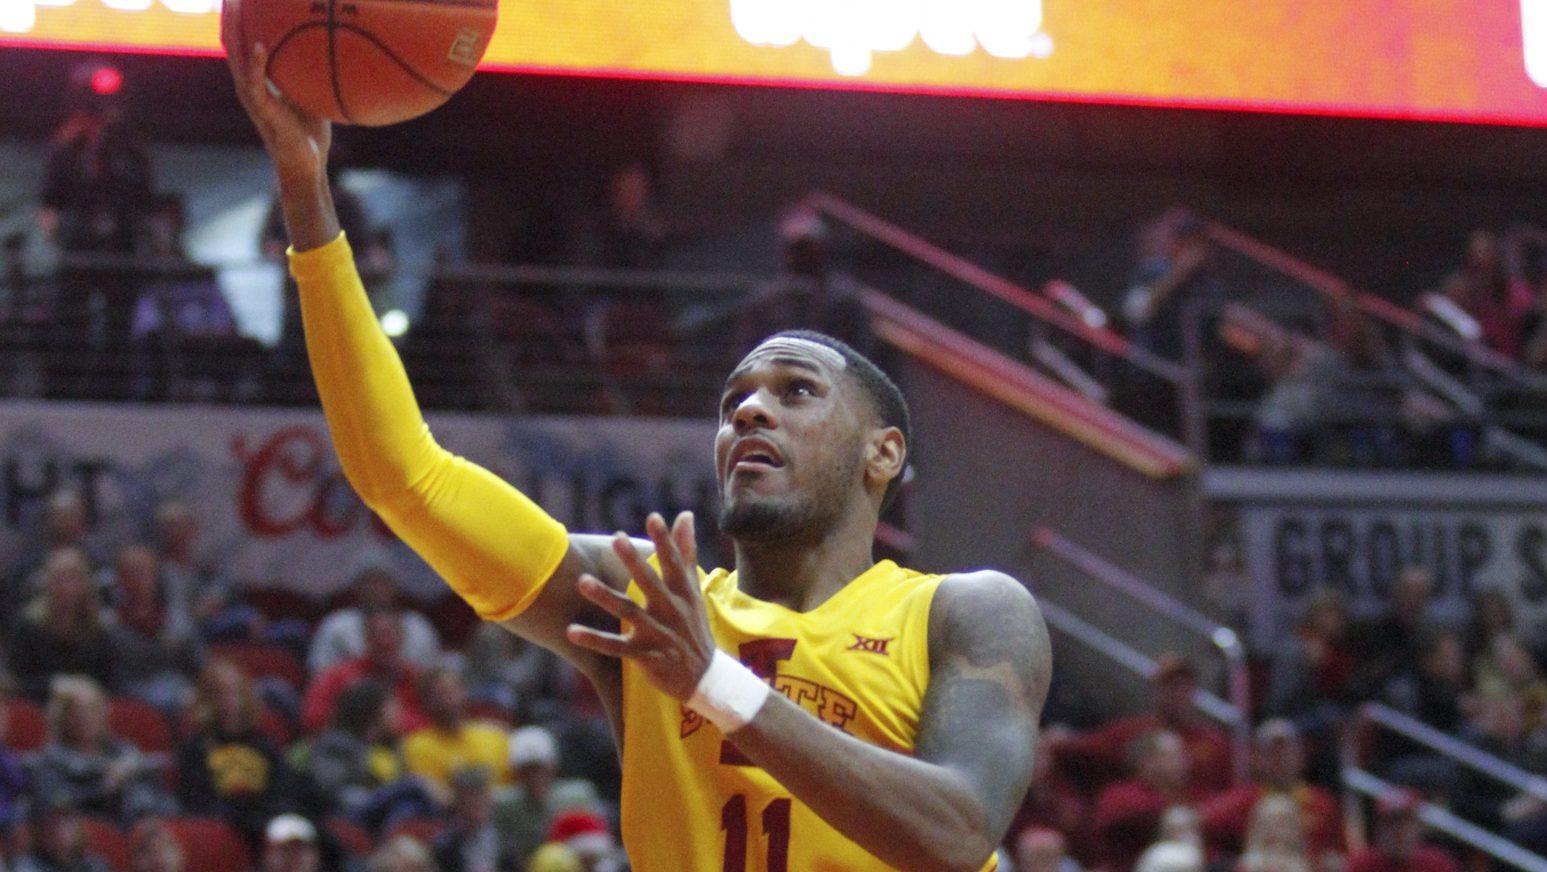 DES MOINES, IA- DECEMBER 17: Guard Monte Morris #11 of the Iowa State Cyclones drives to the basket during the first half against the Drake Bulldogs on December 17, 2016 in the Hy-Vee Classic at Well Fargo Arena in Des Moines, Iowa. (Photo by Matthew Holst/Getty Images)